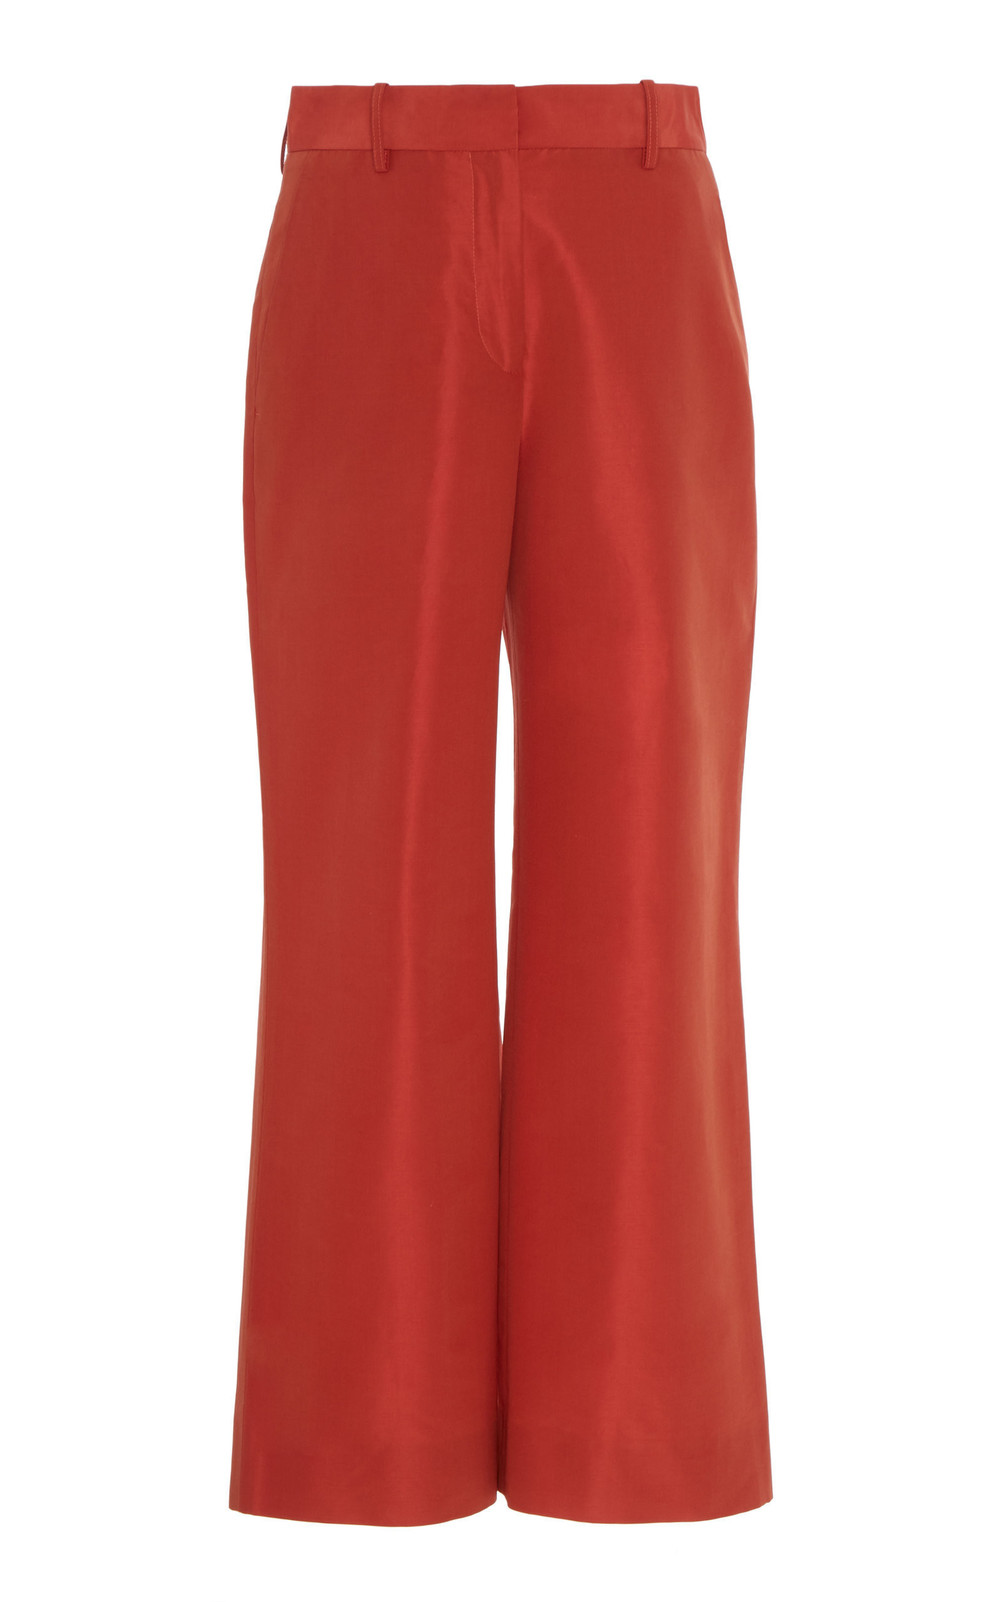 Mansur Gavriel High-Waisted Cotton And Silk Taffeta Cropped Pants in red